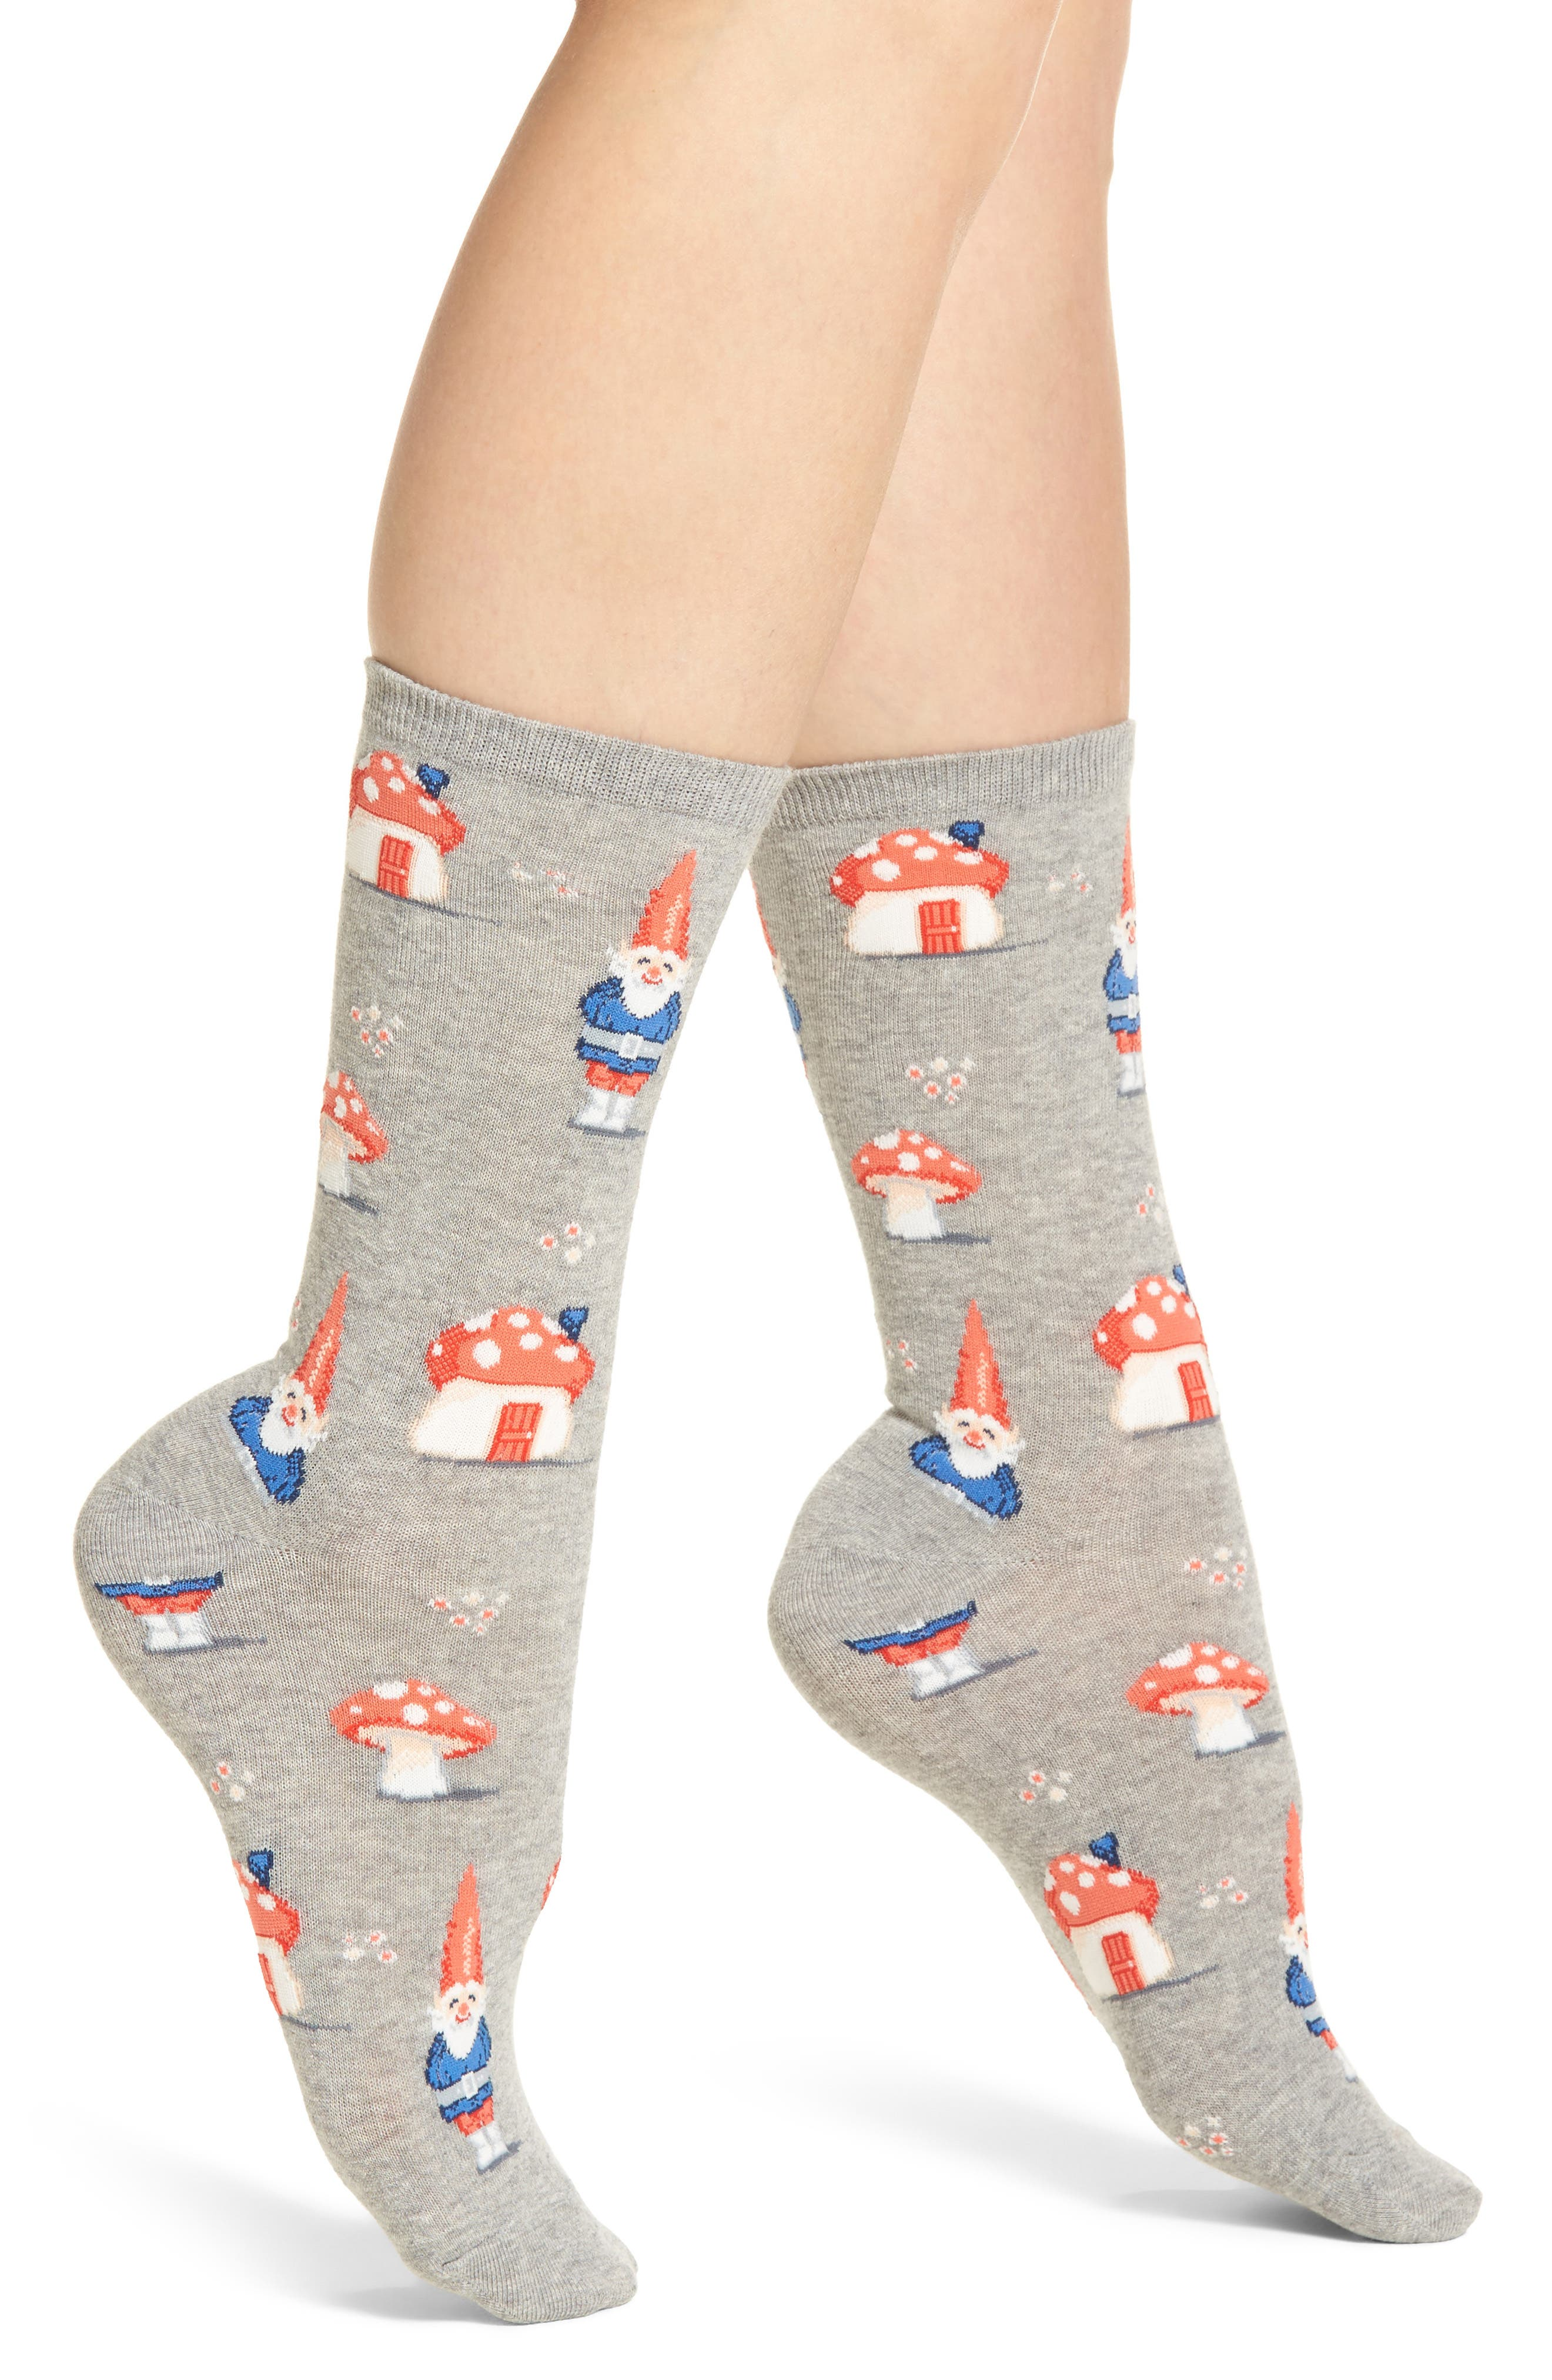 Gnomes Crew Socks,                         Main,                         color, Grey Heather